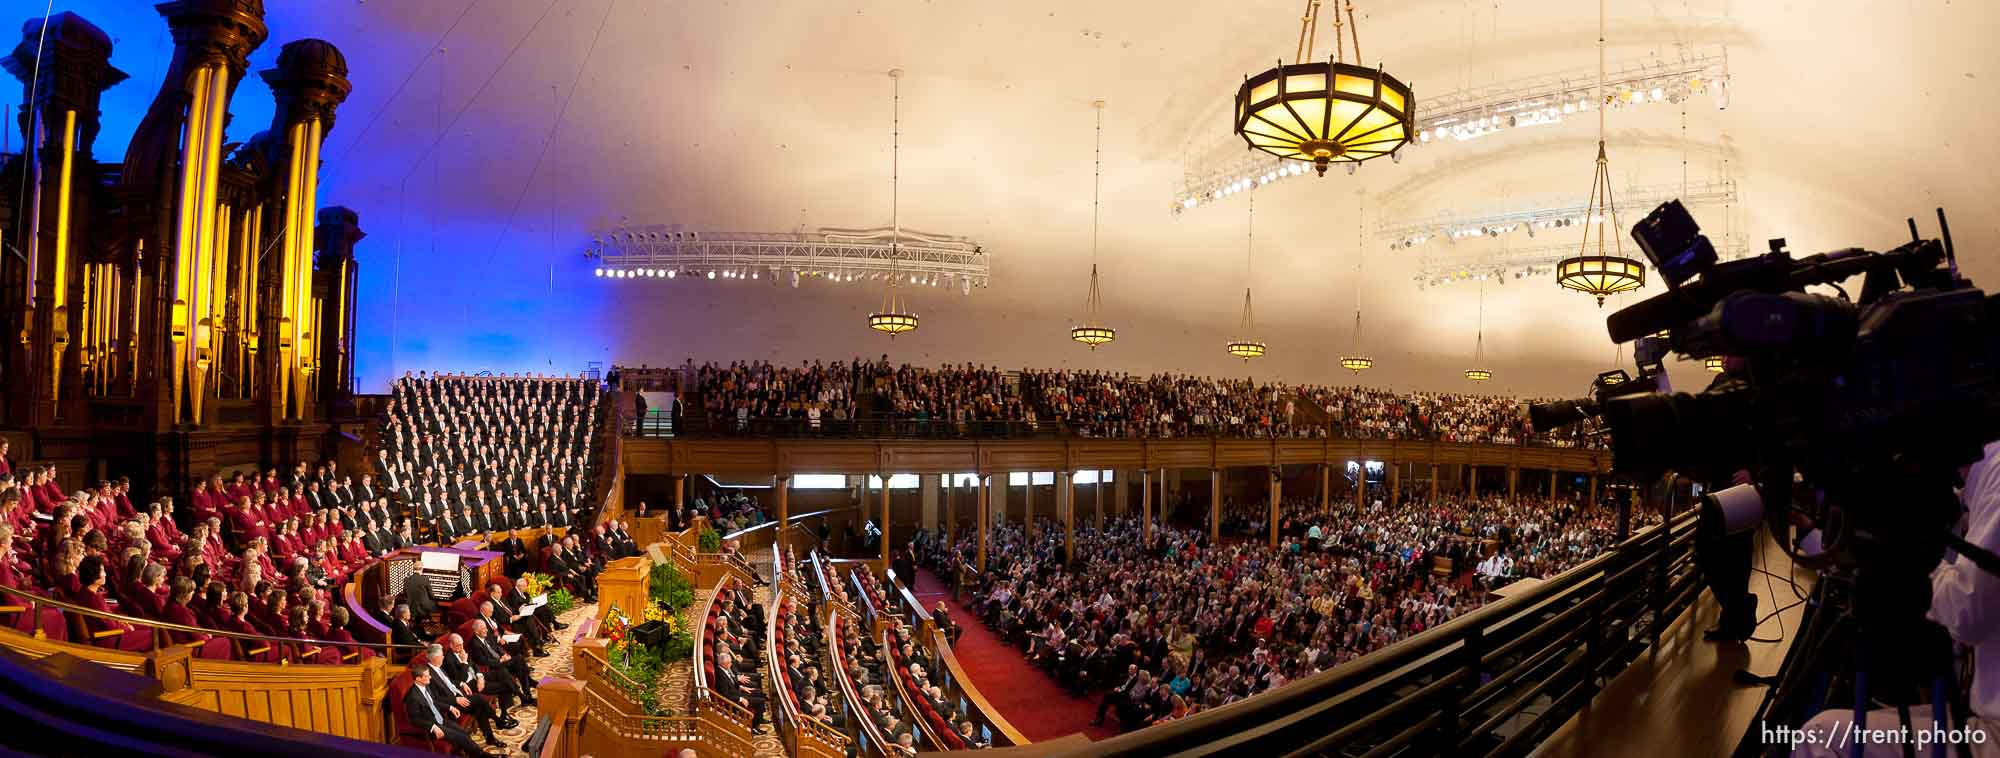 LDS General Conference, and re-dedication of the historic tabernacle building after a renovation.